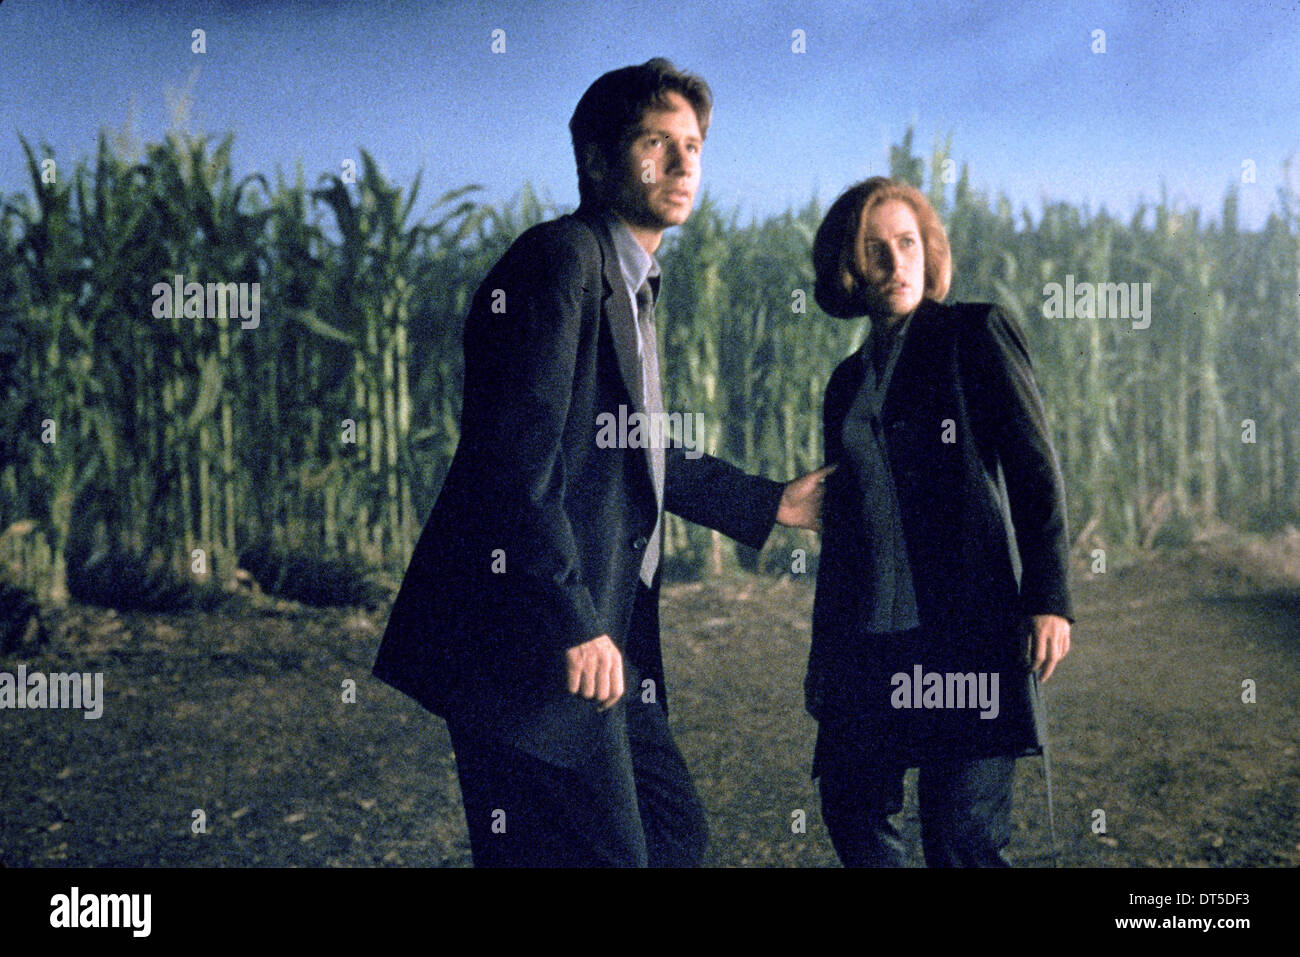 DAVID DUCHOVNY, GILLIAN ANDERSON, THE X FILES, 1998 - Stock Image